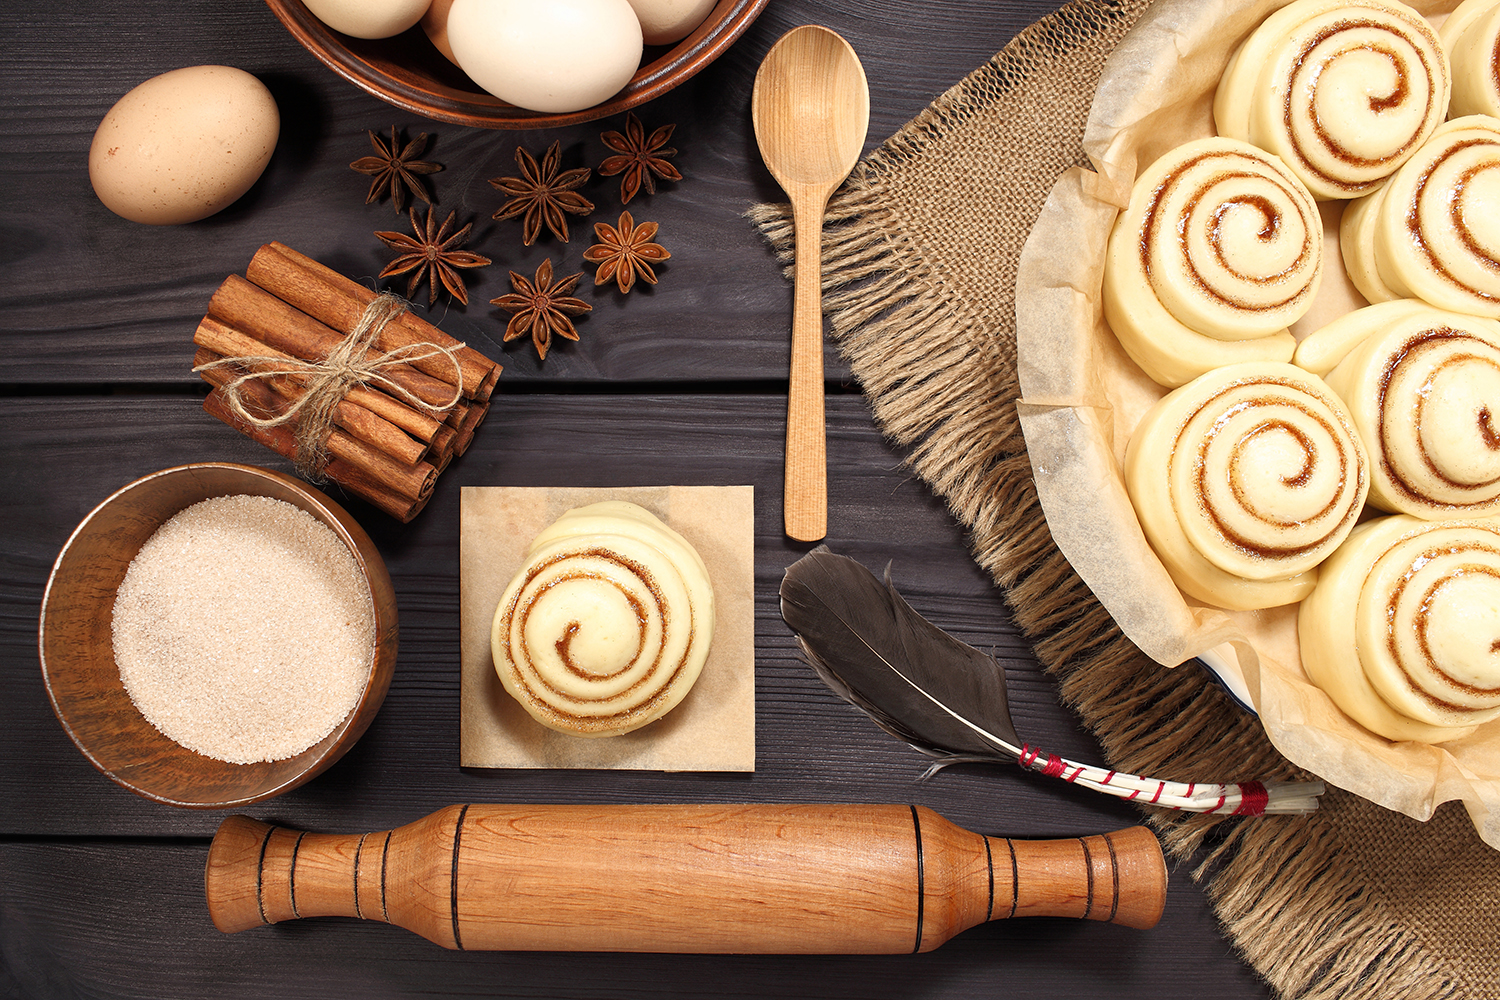 Set of 11 photos - raw buns: cinnamon rolls prepared for baking on a background of rustic table example image 18